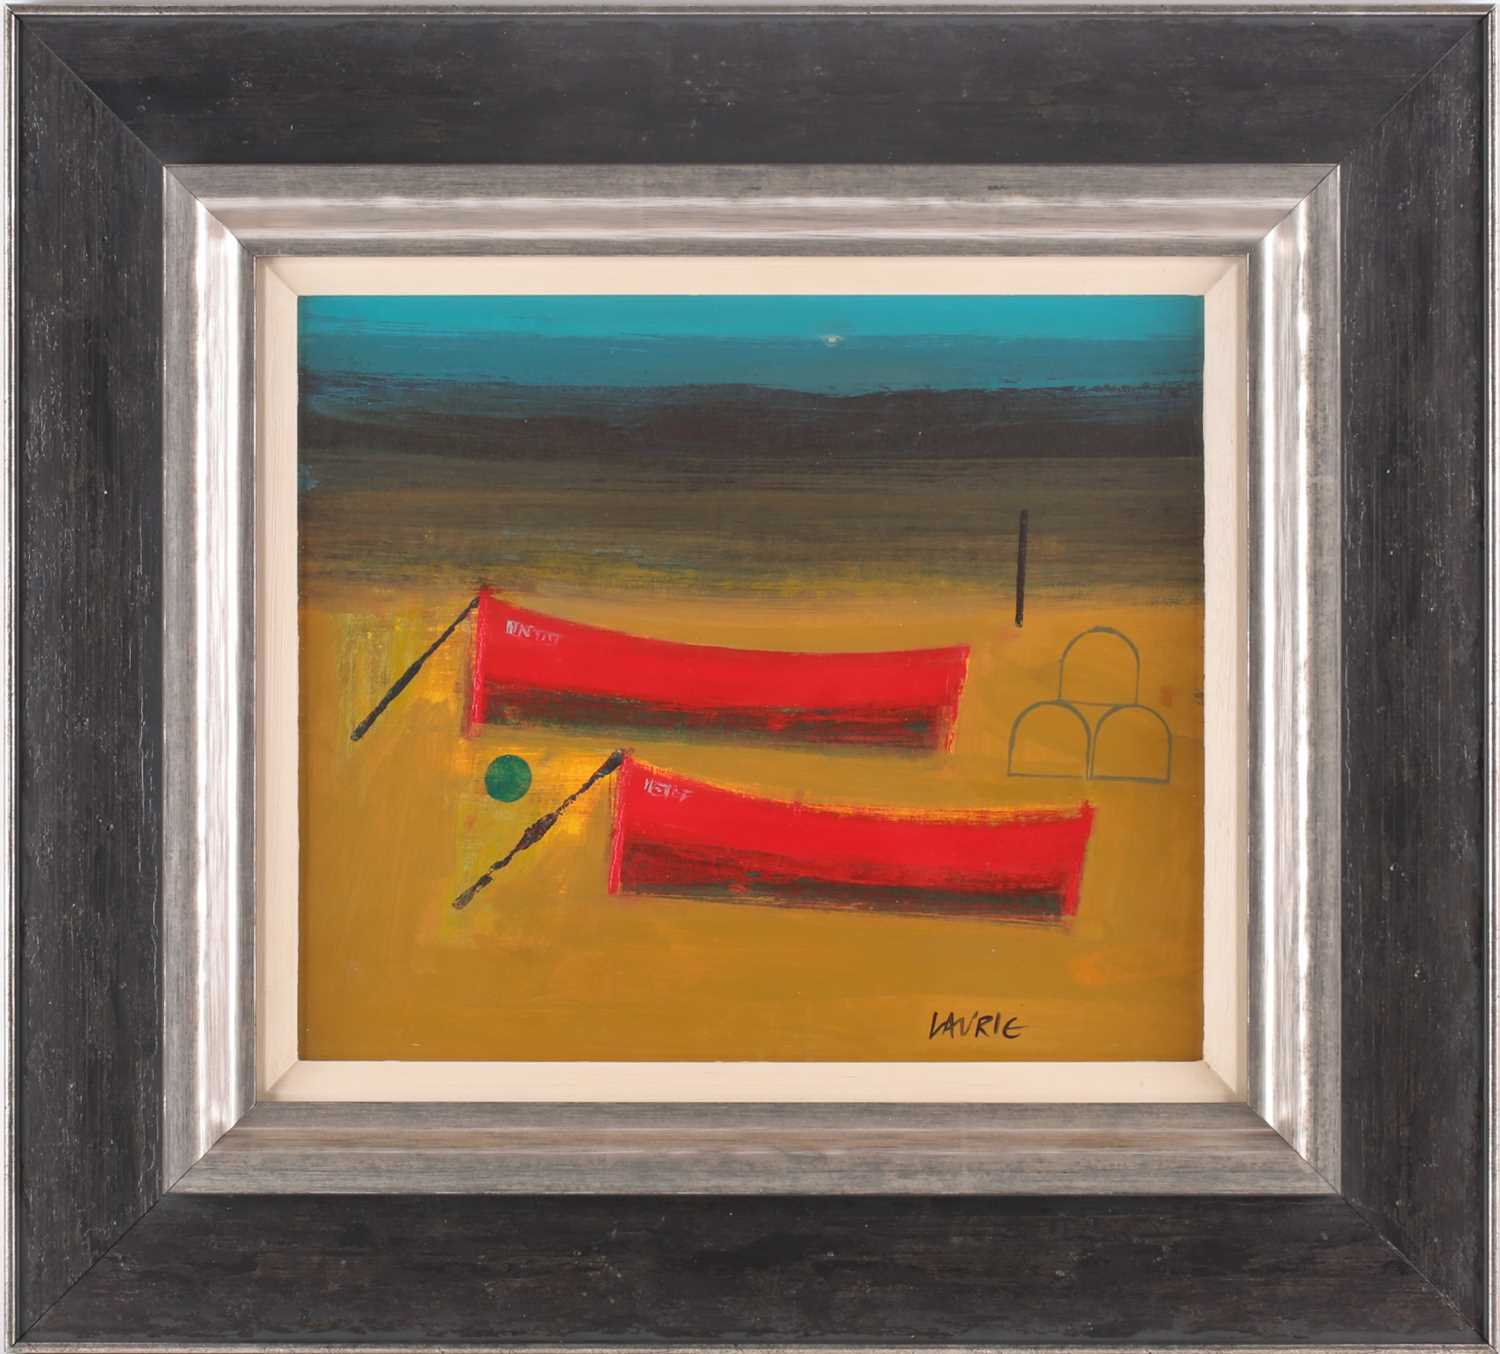 Simon Laurie, RSW RGI (Scottish. B. 1964), Rest Day, acrylic on board, signed lower right, 30.5cm